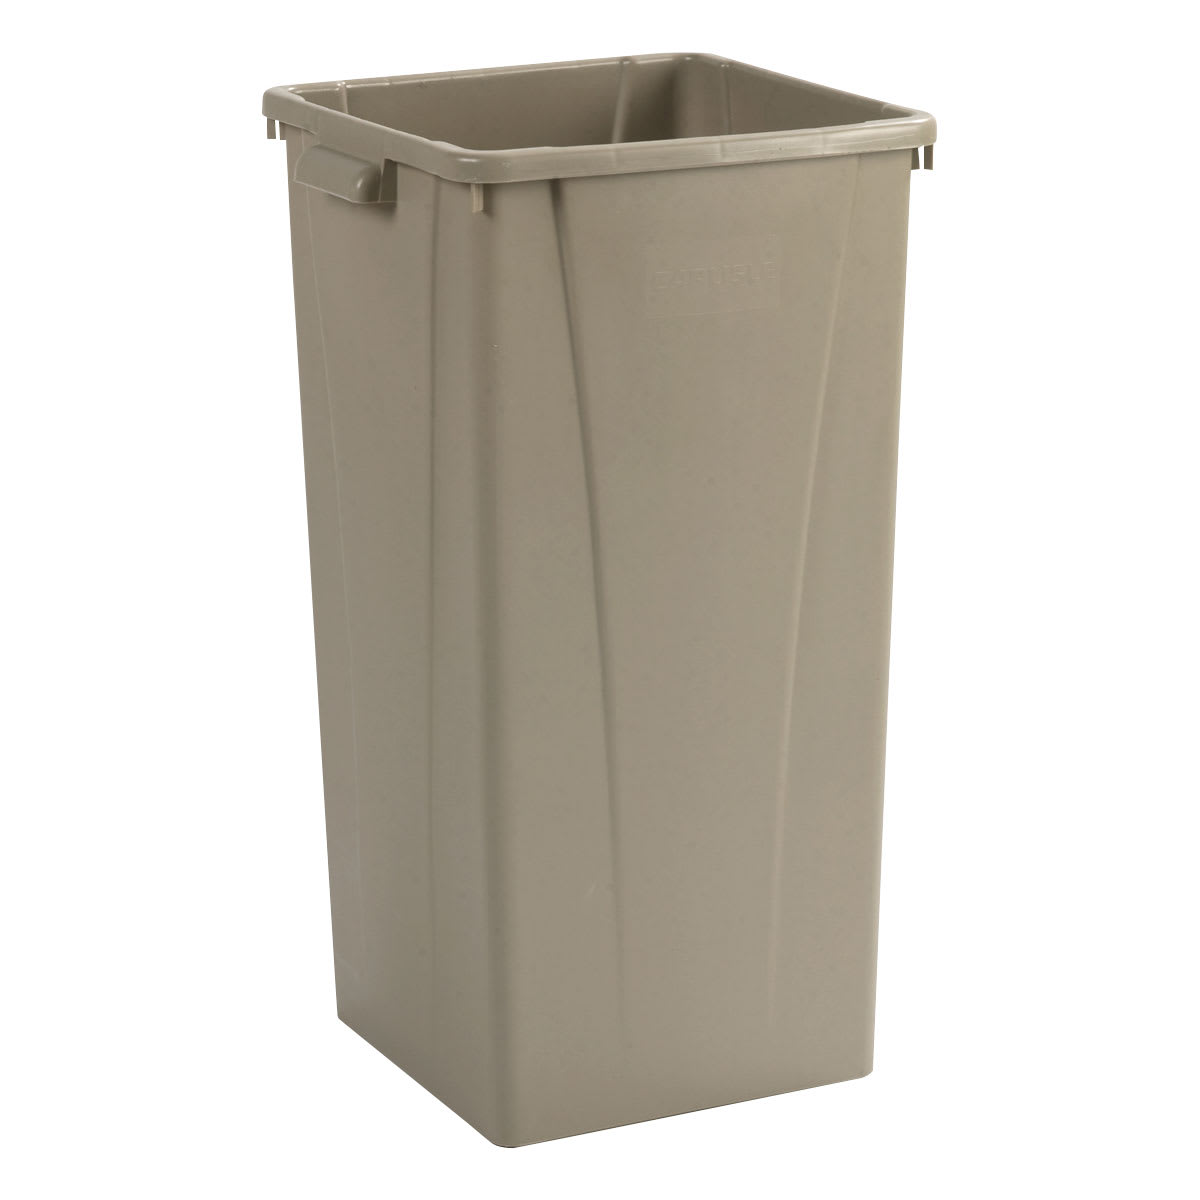 Carlisle 34352306 23 gallon Commercial Trash Can - Plastic, Square, Built-in Handles